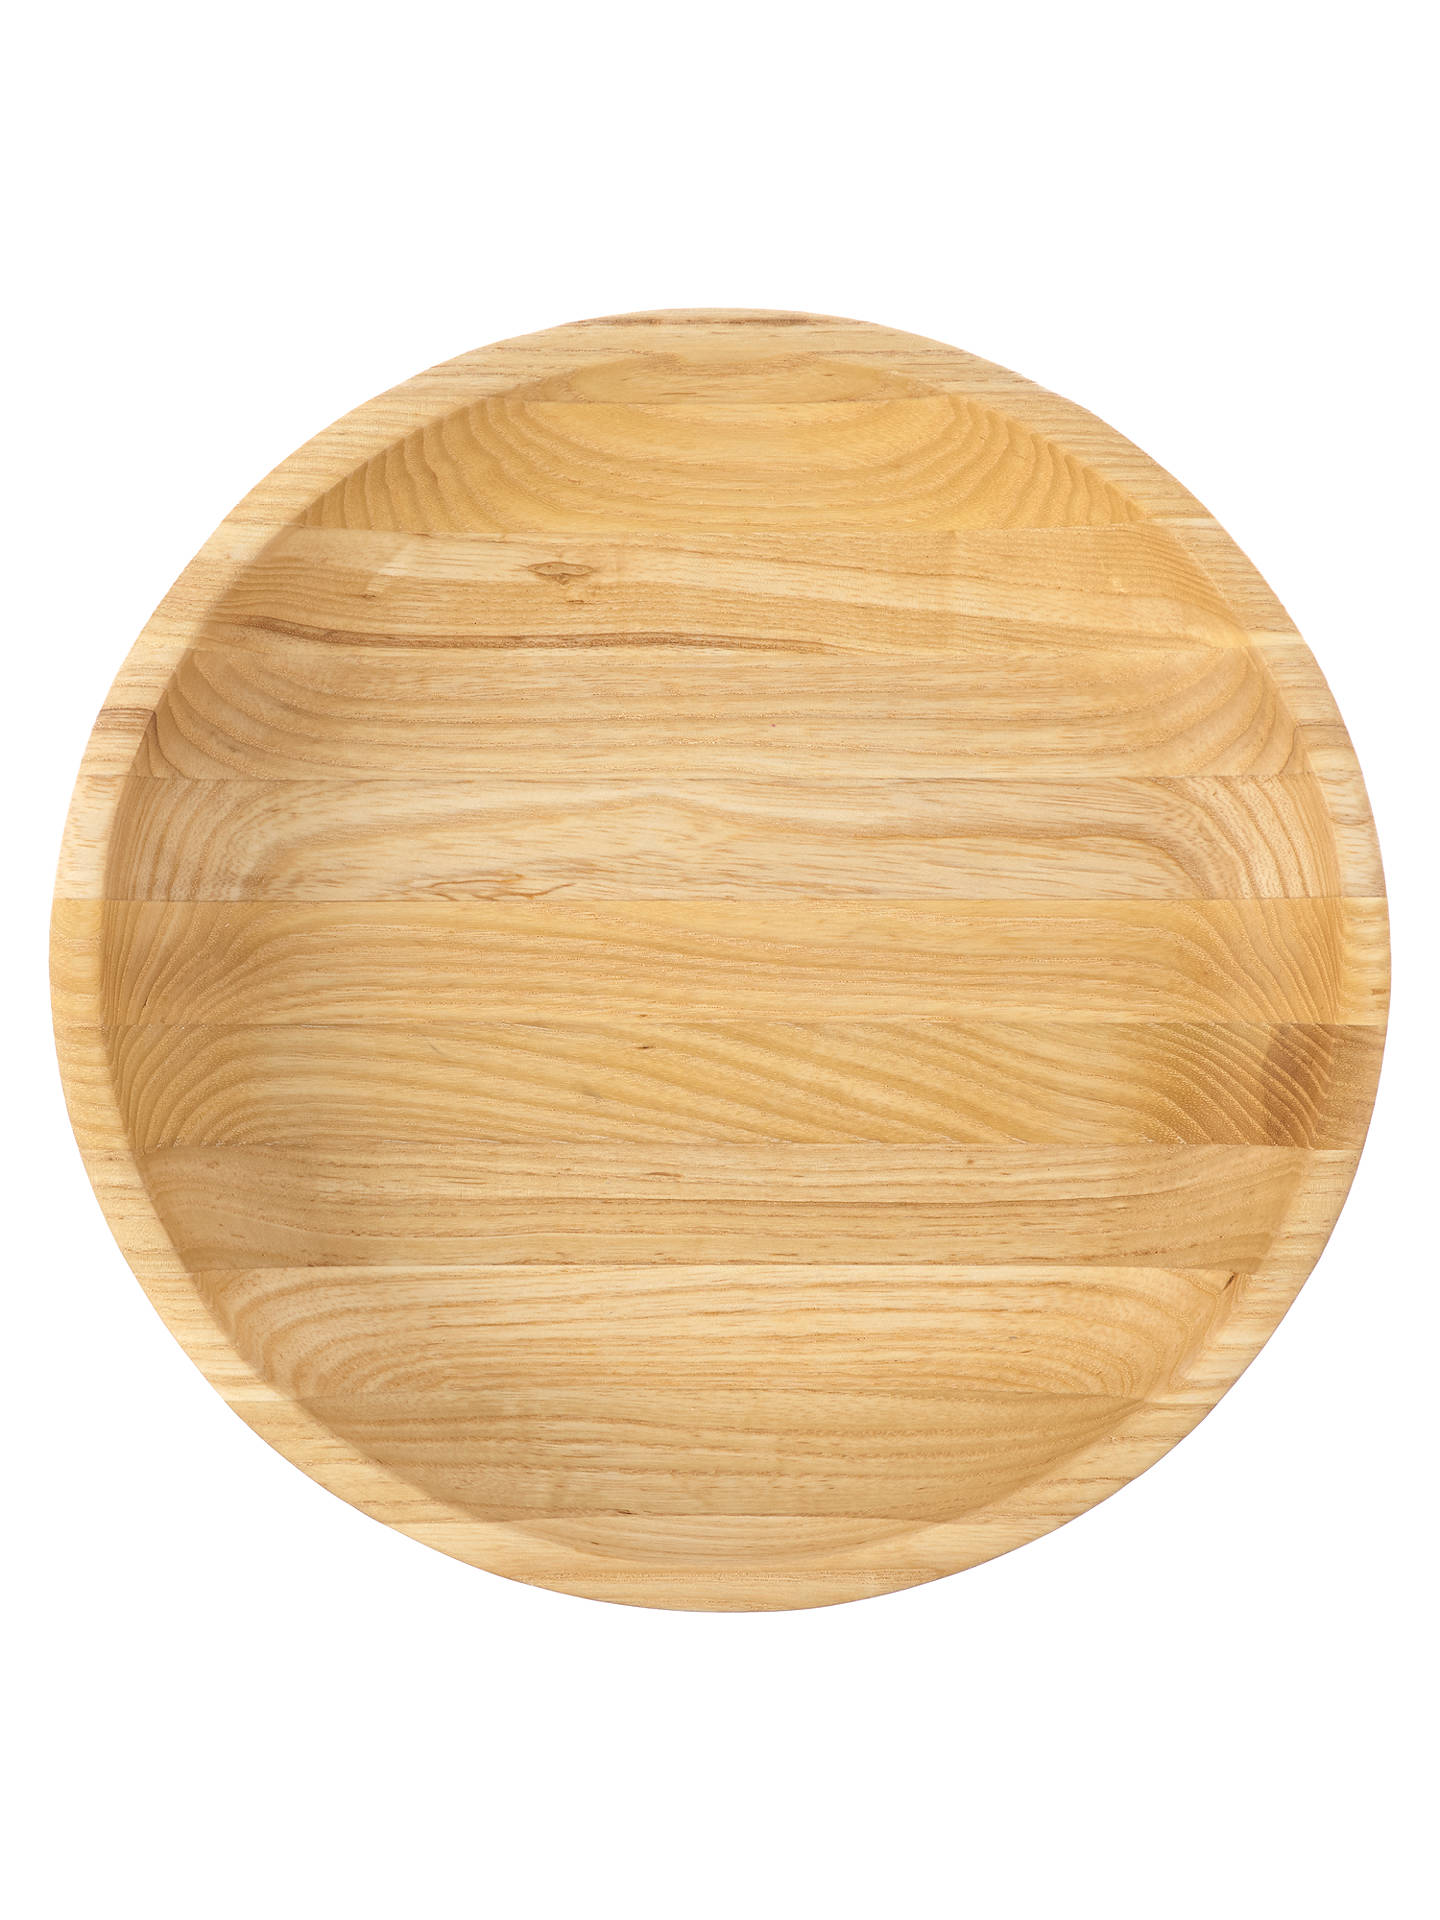 Buy John Lewis & Partners Coastal Ash Wood Shallow Serving Dish, 26cm Online at johnlewis.com